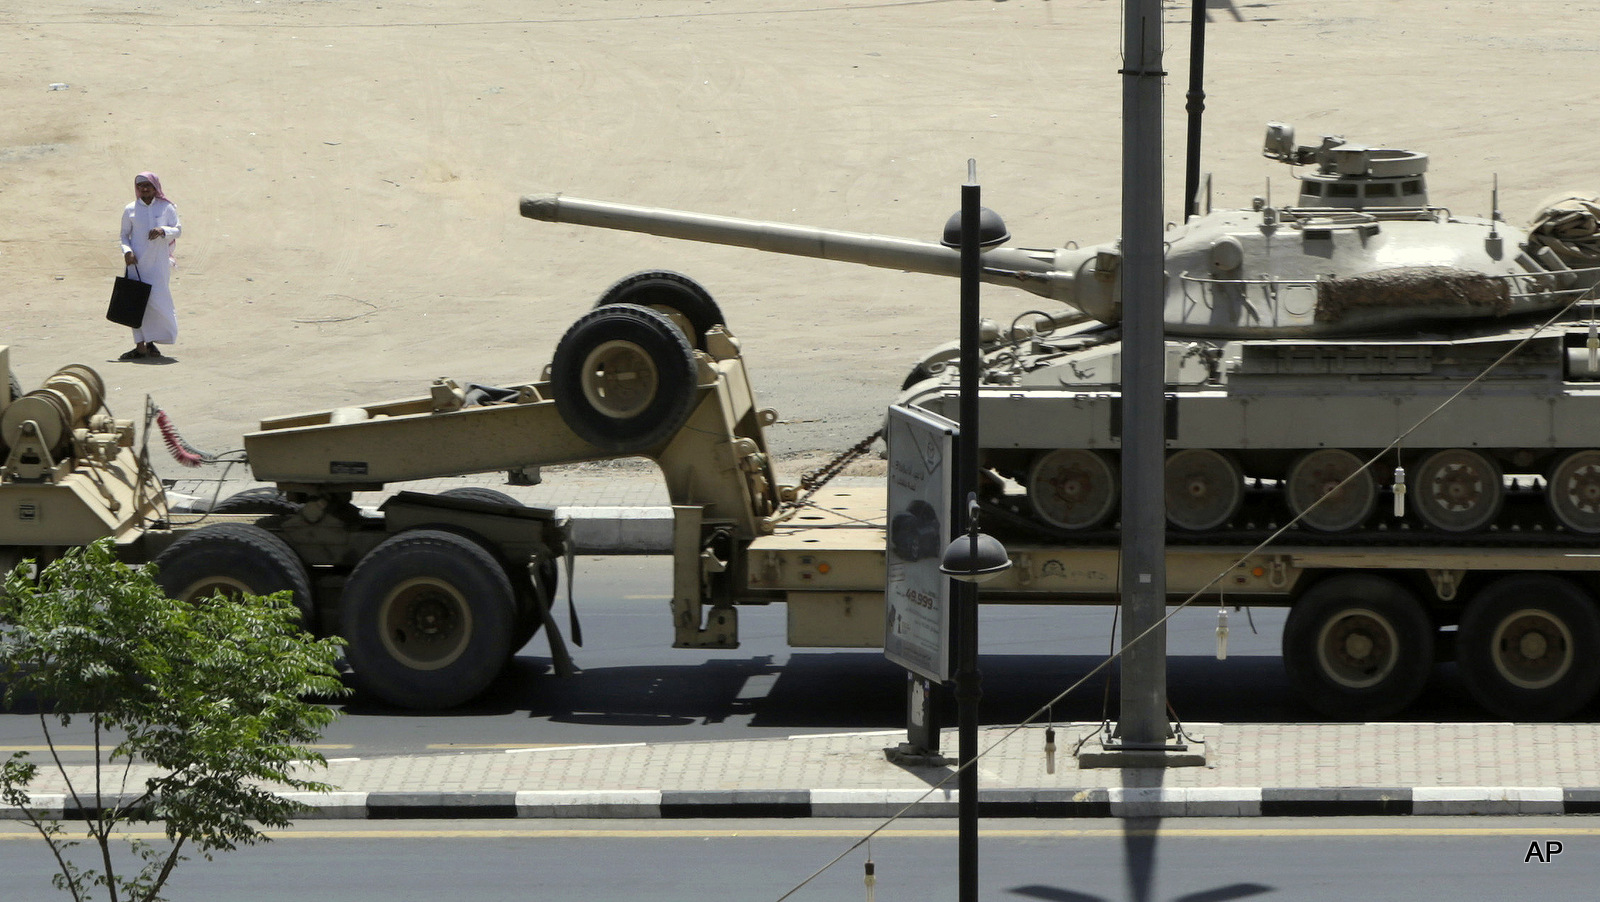 A Saudi man looks at an army tank being transported, in the city of Najran, Saudi Arabia, near the border with Yemen, Thursday, April 23, 2015.